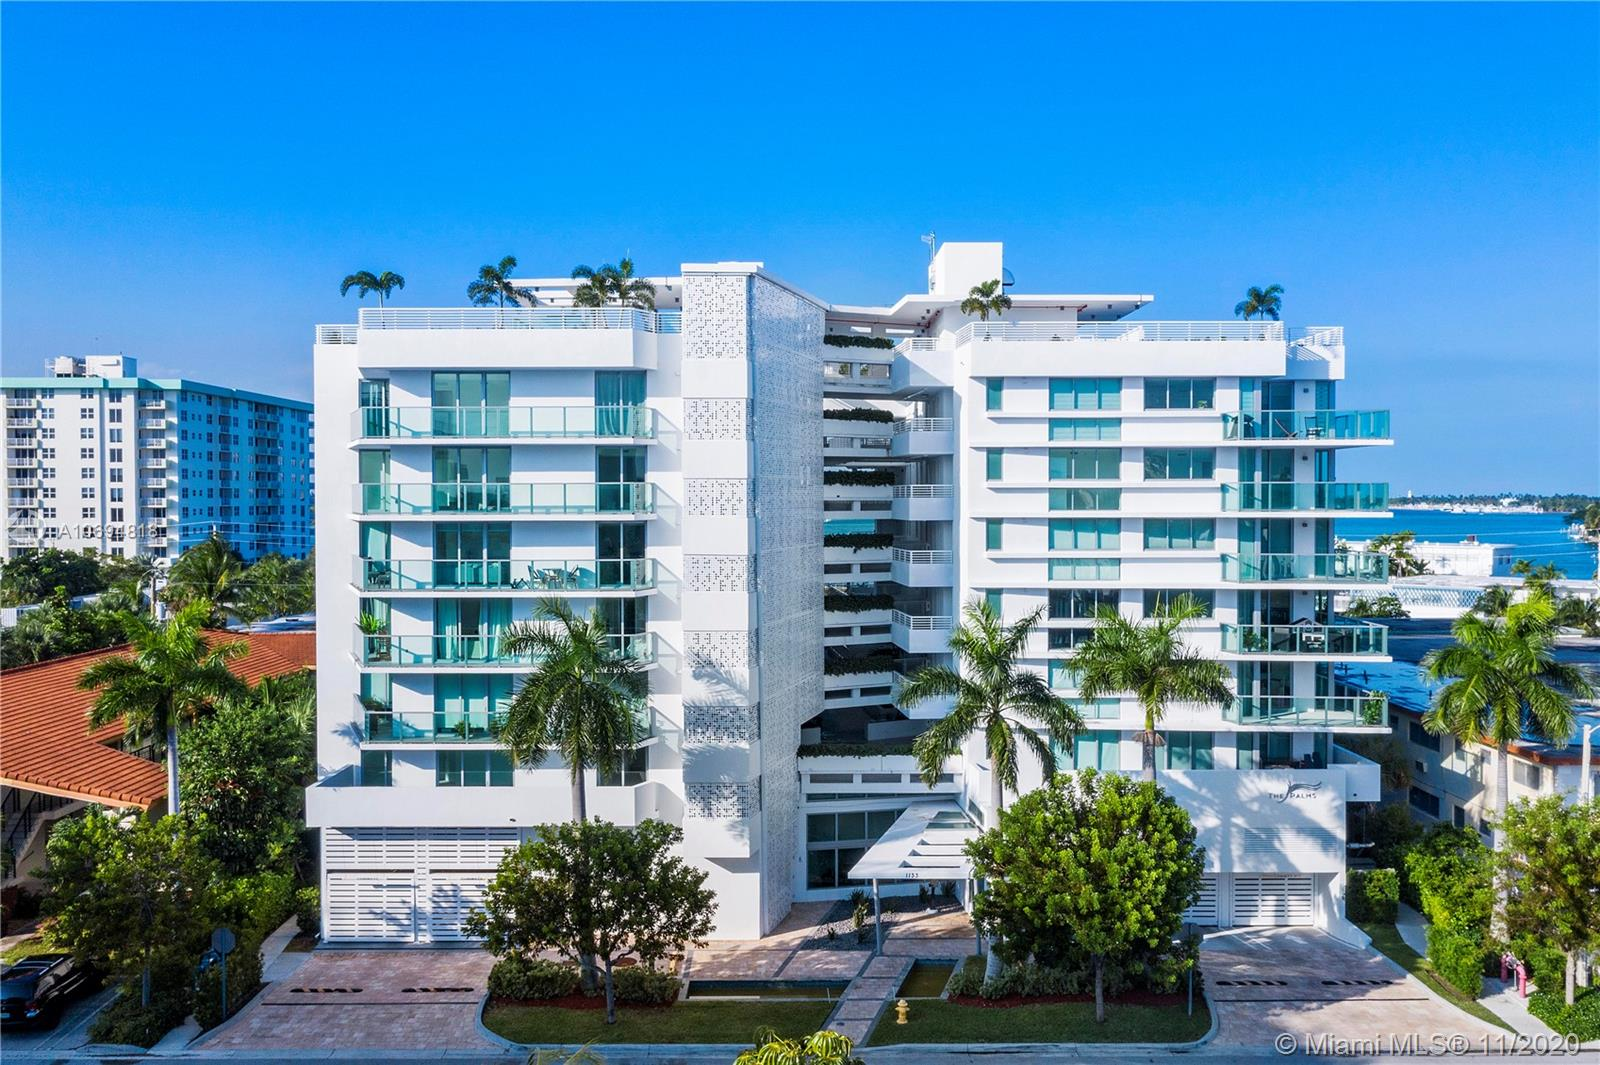 Brand new boutique style building in Bay Harbor Islands. Unit has 2 bedrooms and 2 bathrooms. Offers stainless steel appliances, tile throughout, washer and dryer inside, impact windows and wine cooler. Gorgeous views from the rooftop infinity pool and hot tub. Unit comes with 2 parking spaces (#81, #82). Walking distance to shopping, places of worship, and A+ Bay Harbor K-8 Education Center. Great for investment opportunity. Unit is currently rented through January 6, 2021 at $2,800 per Month. 24 hour notice needed for showing. Private rooftop terrace with electric grill and sink included with the purchase of this unit.